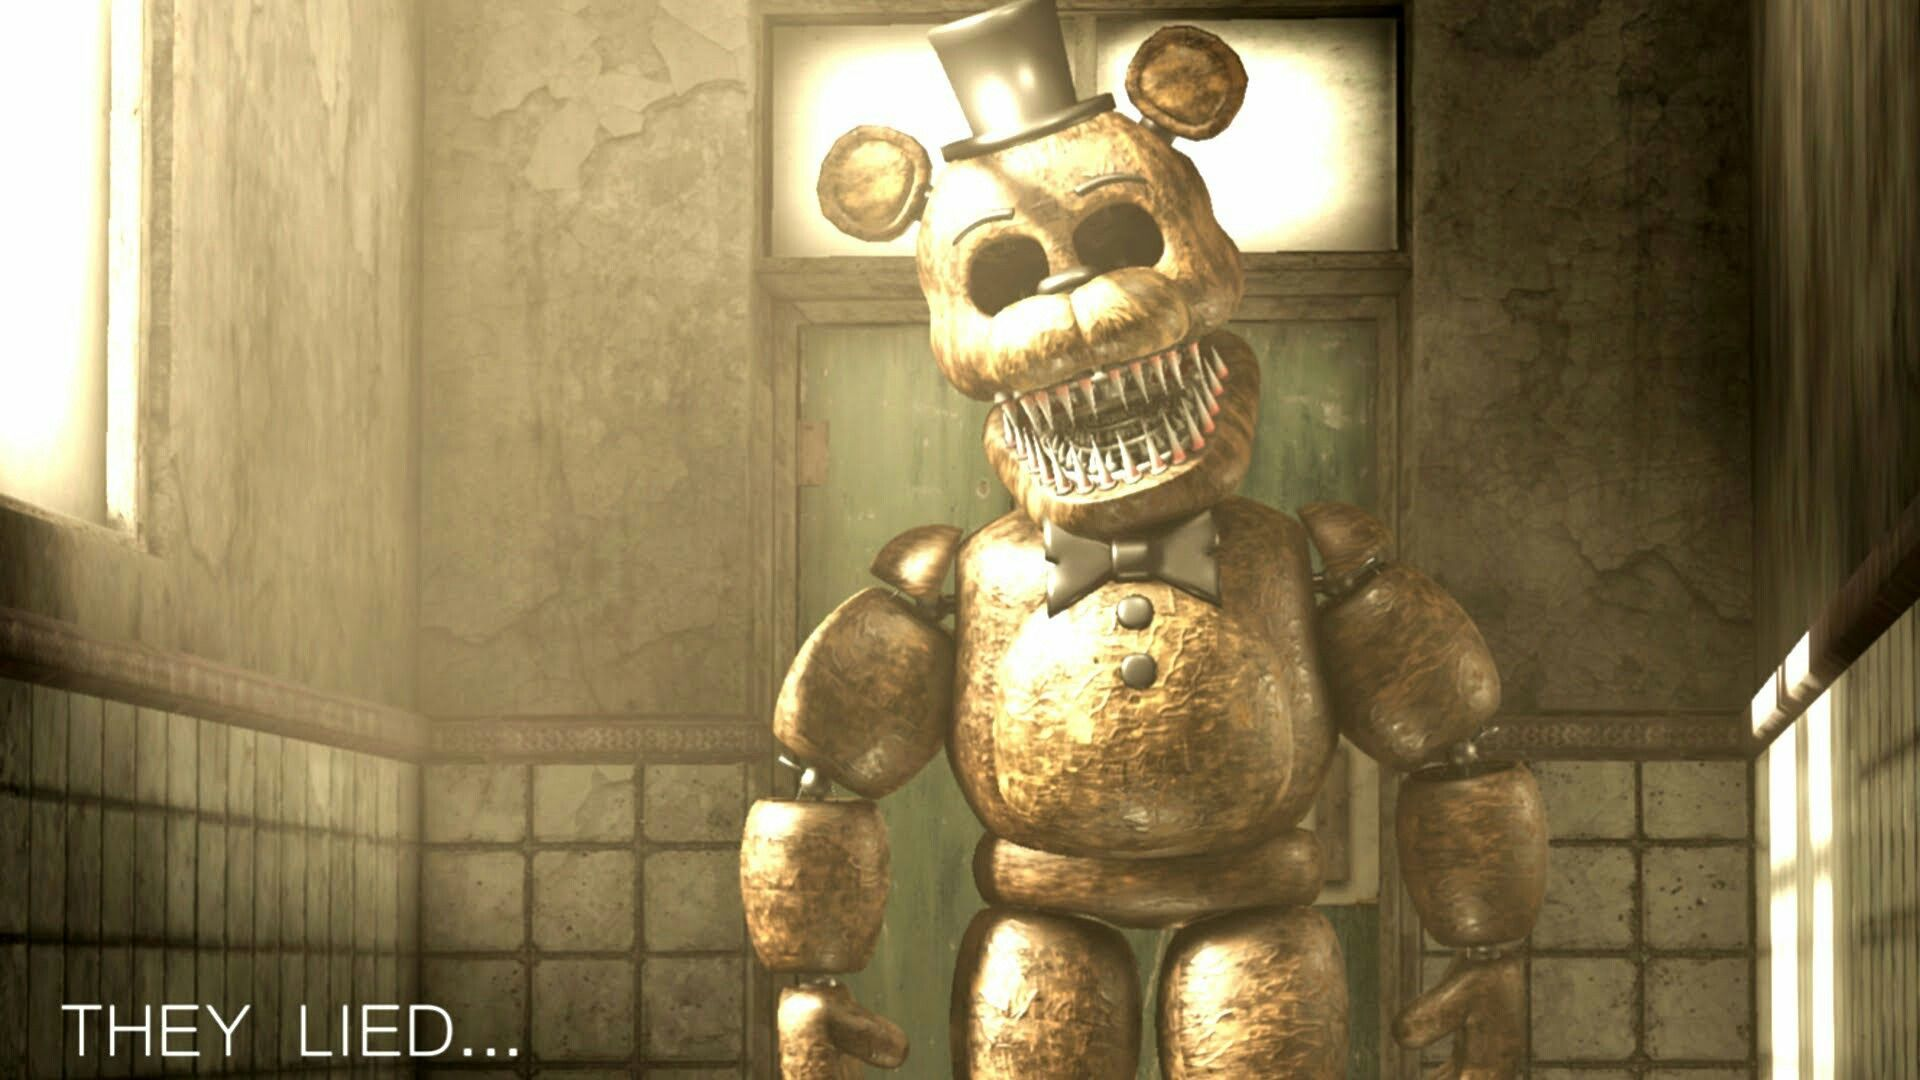 FNAF Sinister Turmoil they lied on GameJolt